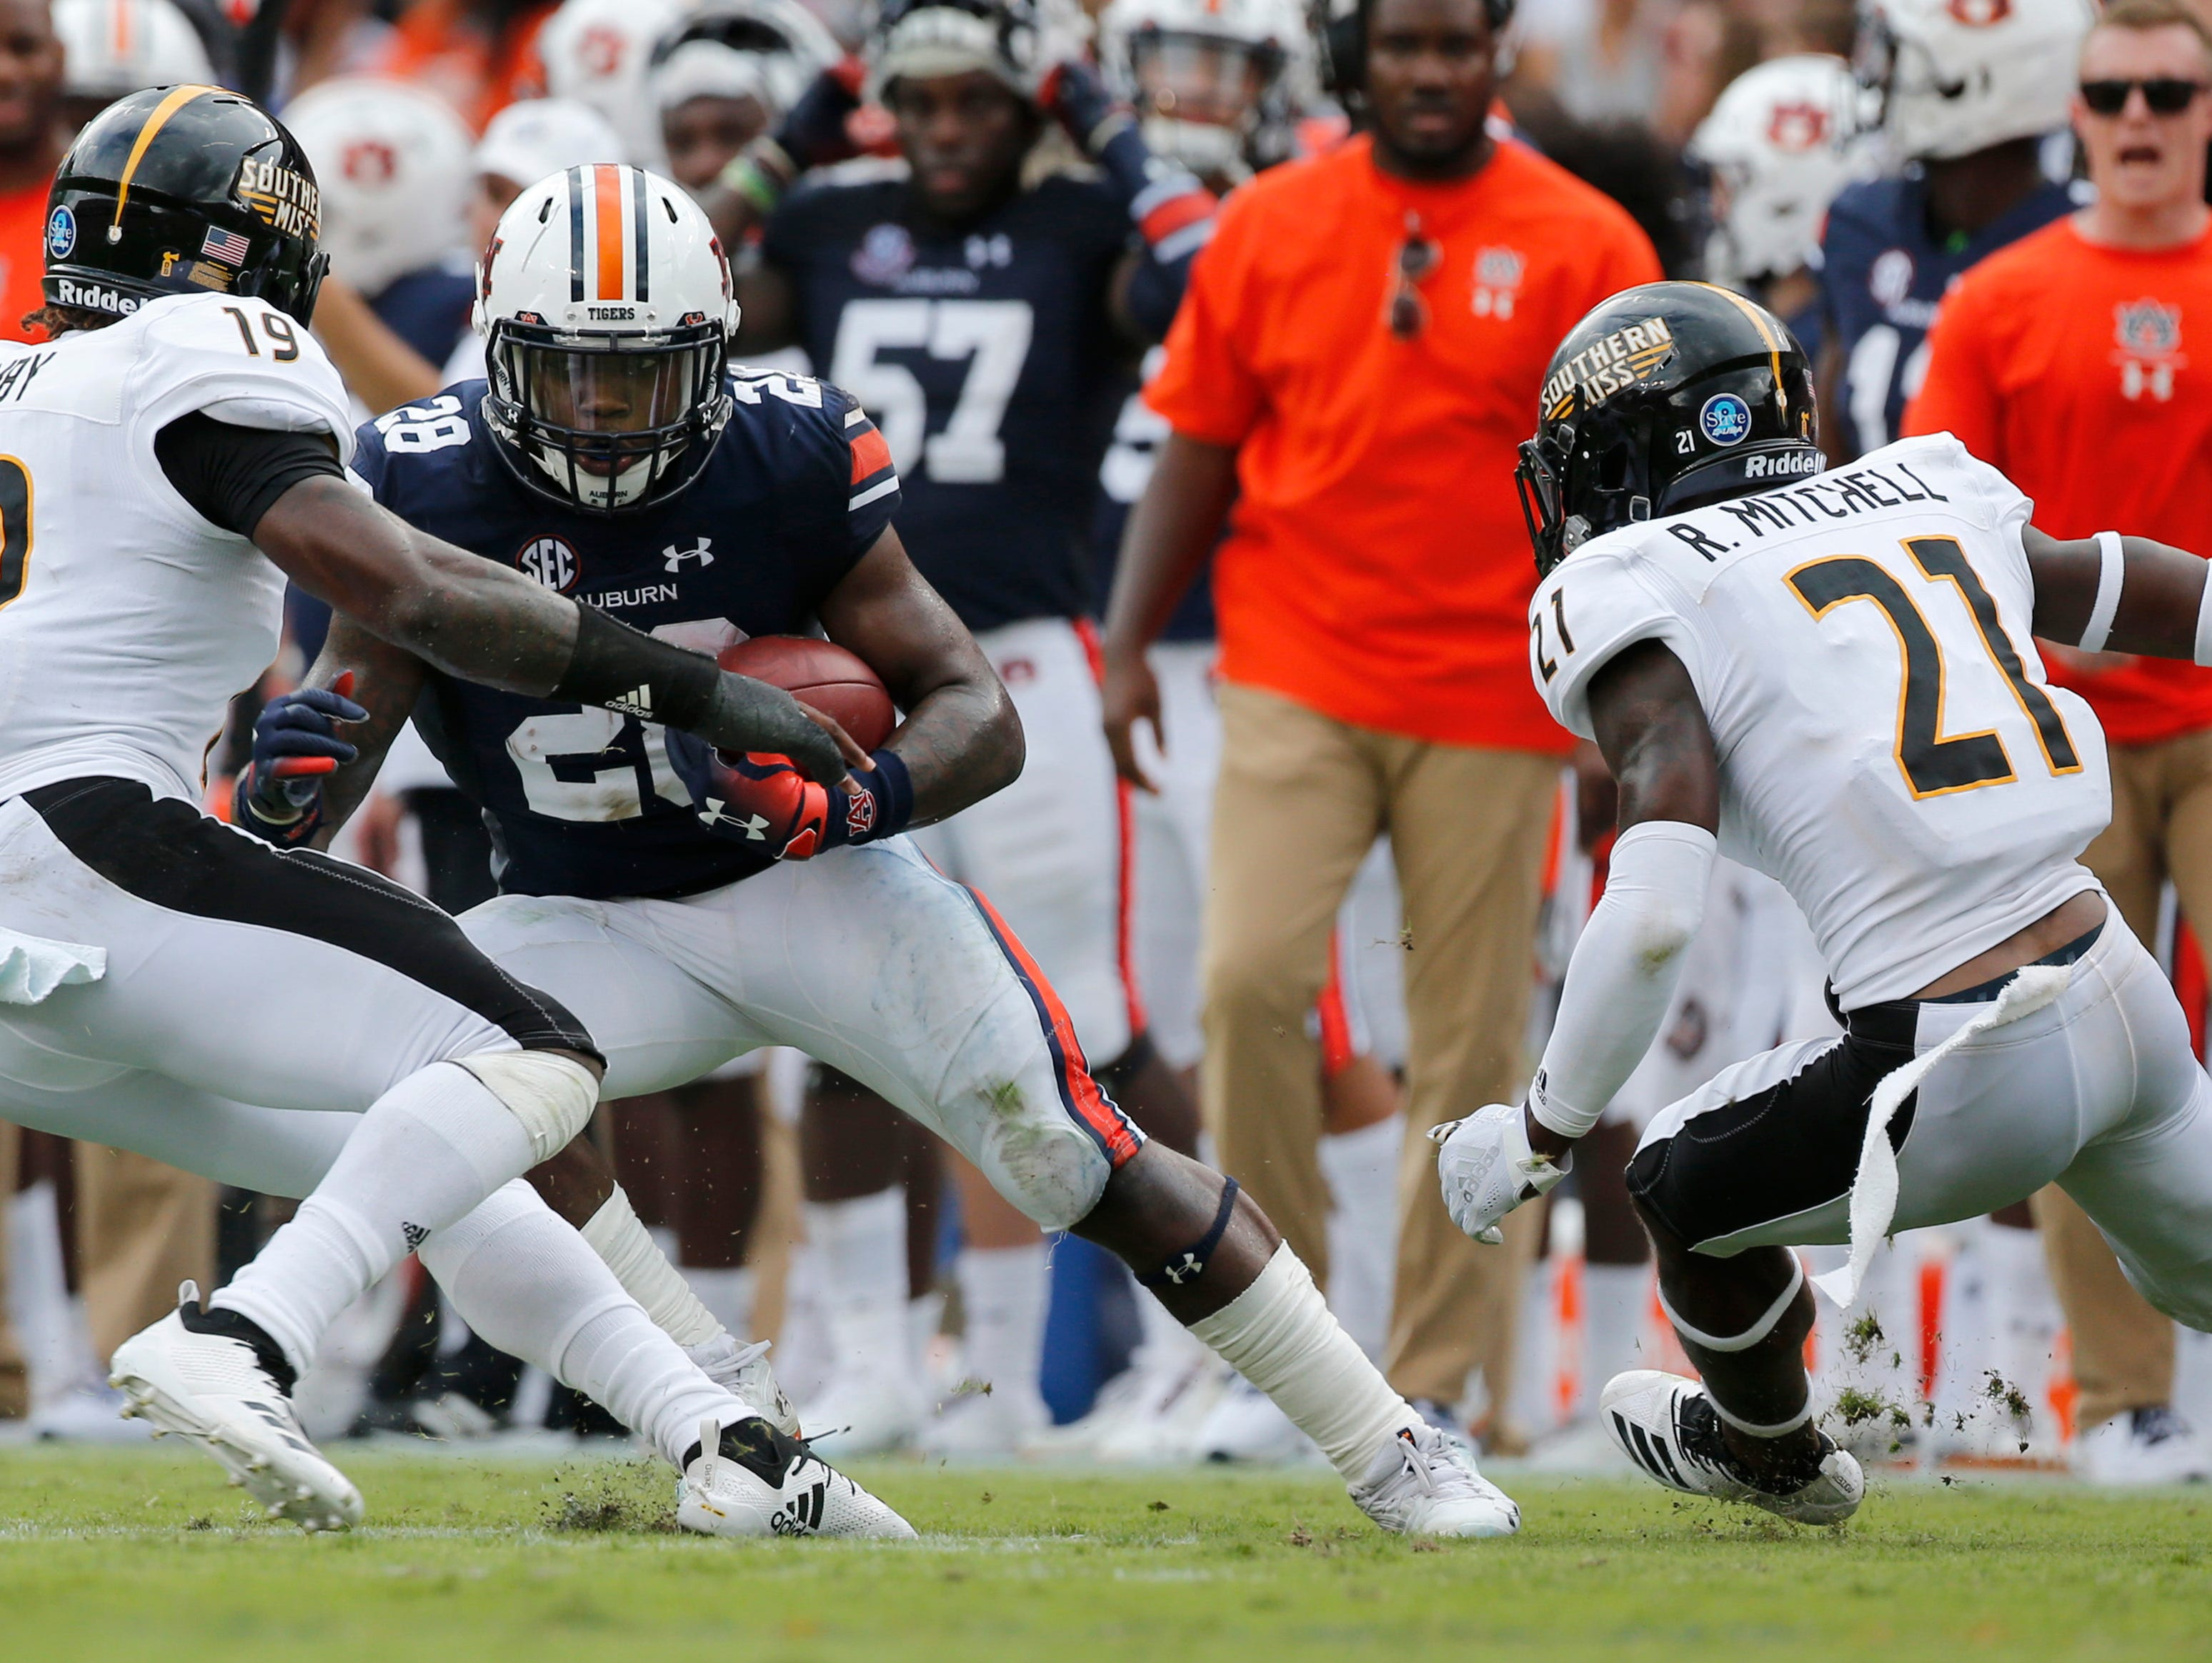 Sep 29, 2018; Auburn, AL, USA; Southern Miss Golden Eagles defensive backs Ku'el Hemby (19) and Rachaun Mitchell (21) close in on Auburn Tigers running back JaTarvious Willaims (28) during the second quarter at Jordan-Hare Stadium. Mandatory Credit: John Reed-USA TODAY Sports